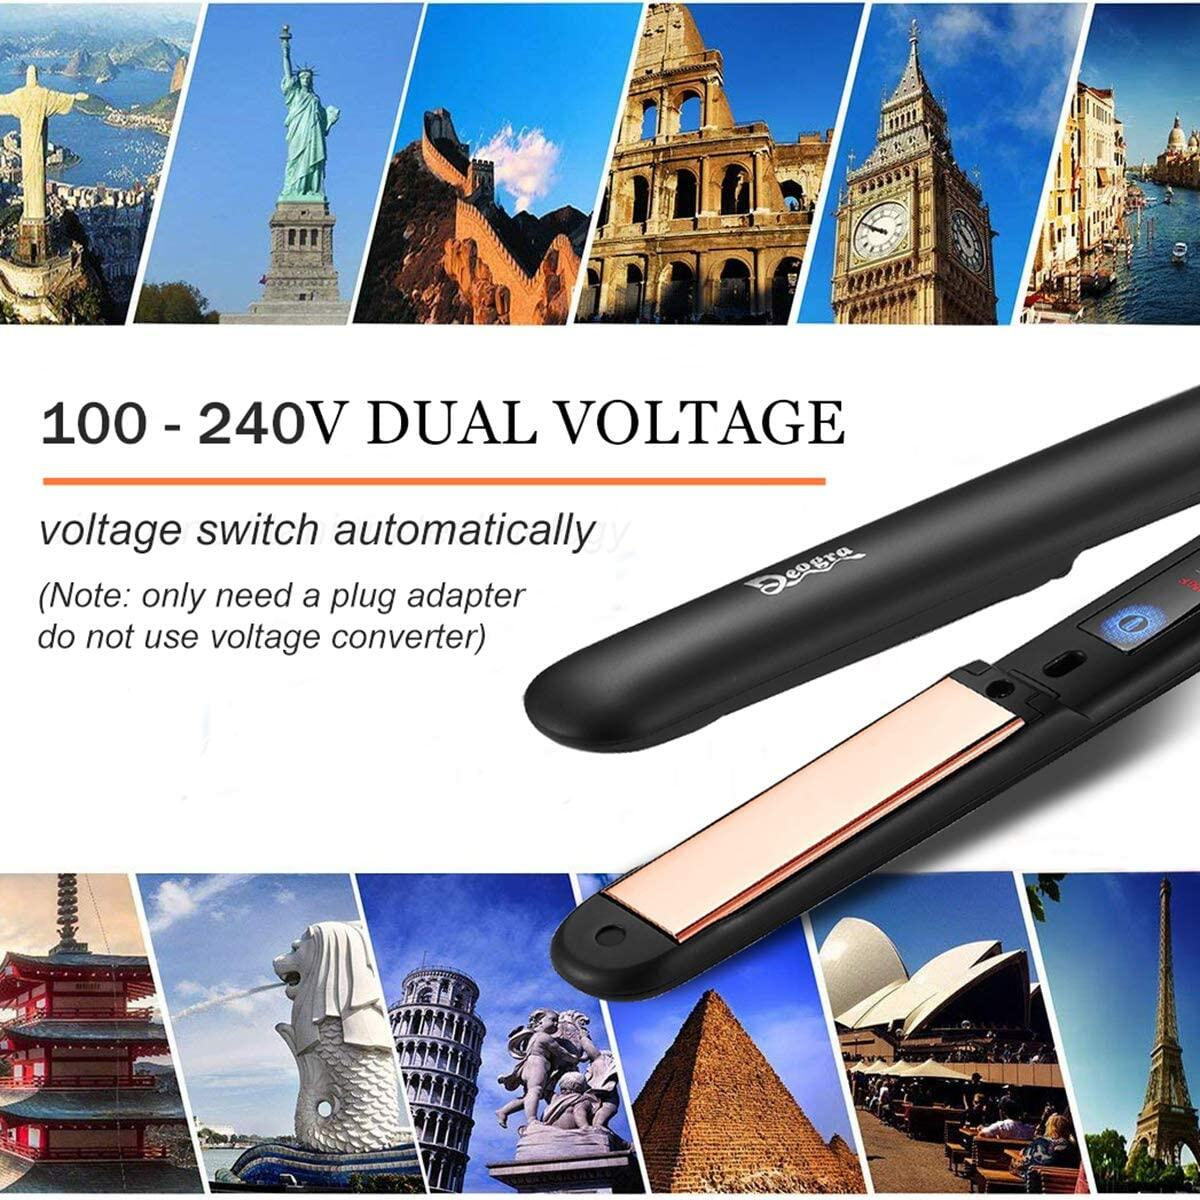 Deogra Titanium Flat Iron for Hair Professional Hair Straightener and Curler 2 in 1, Dual Voltage Travel Flat Iron with Temperature Adjustable High Heat 450°F, Floating Plate 15s Heat Up